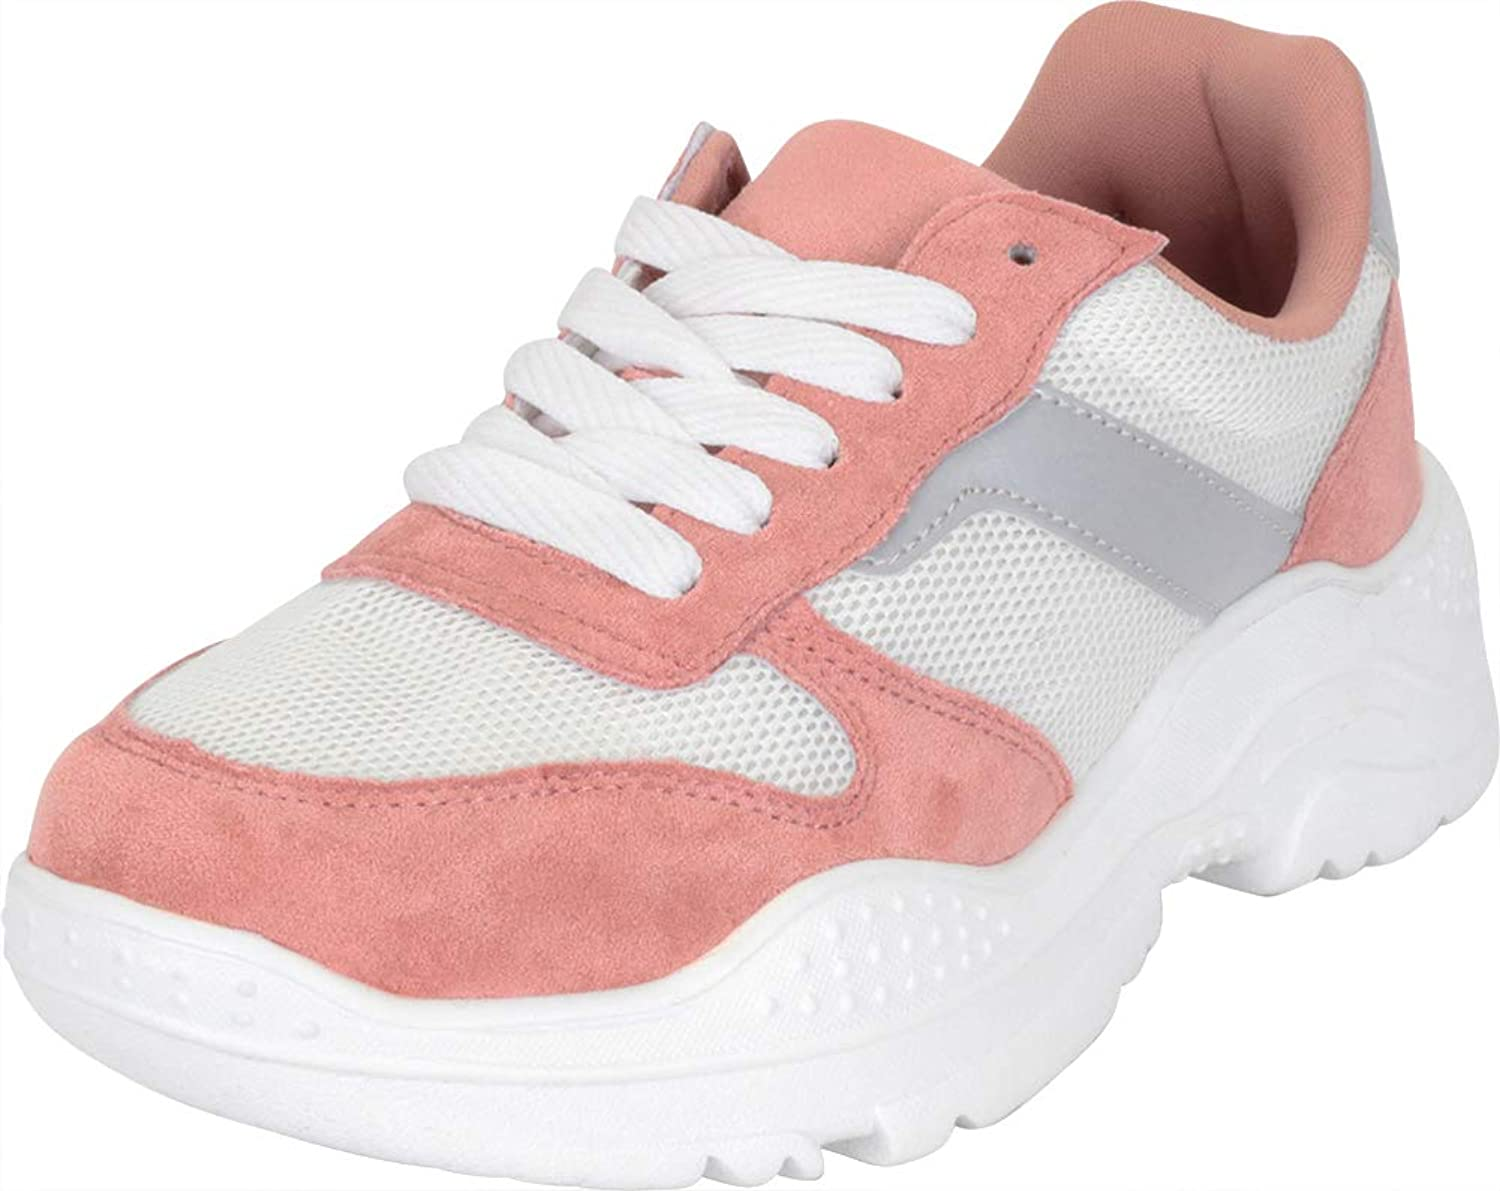 Cambridge Select Women's Low Top Retro 90s Ugly Dad colorblock Lace-Up Chunky Fashion Sneaker